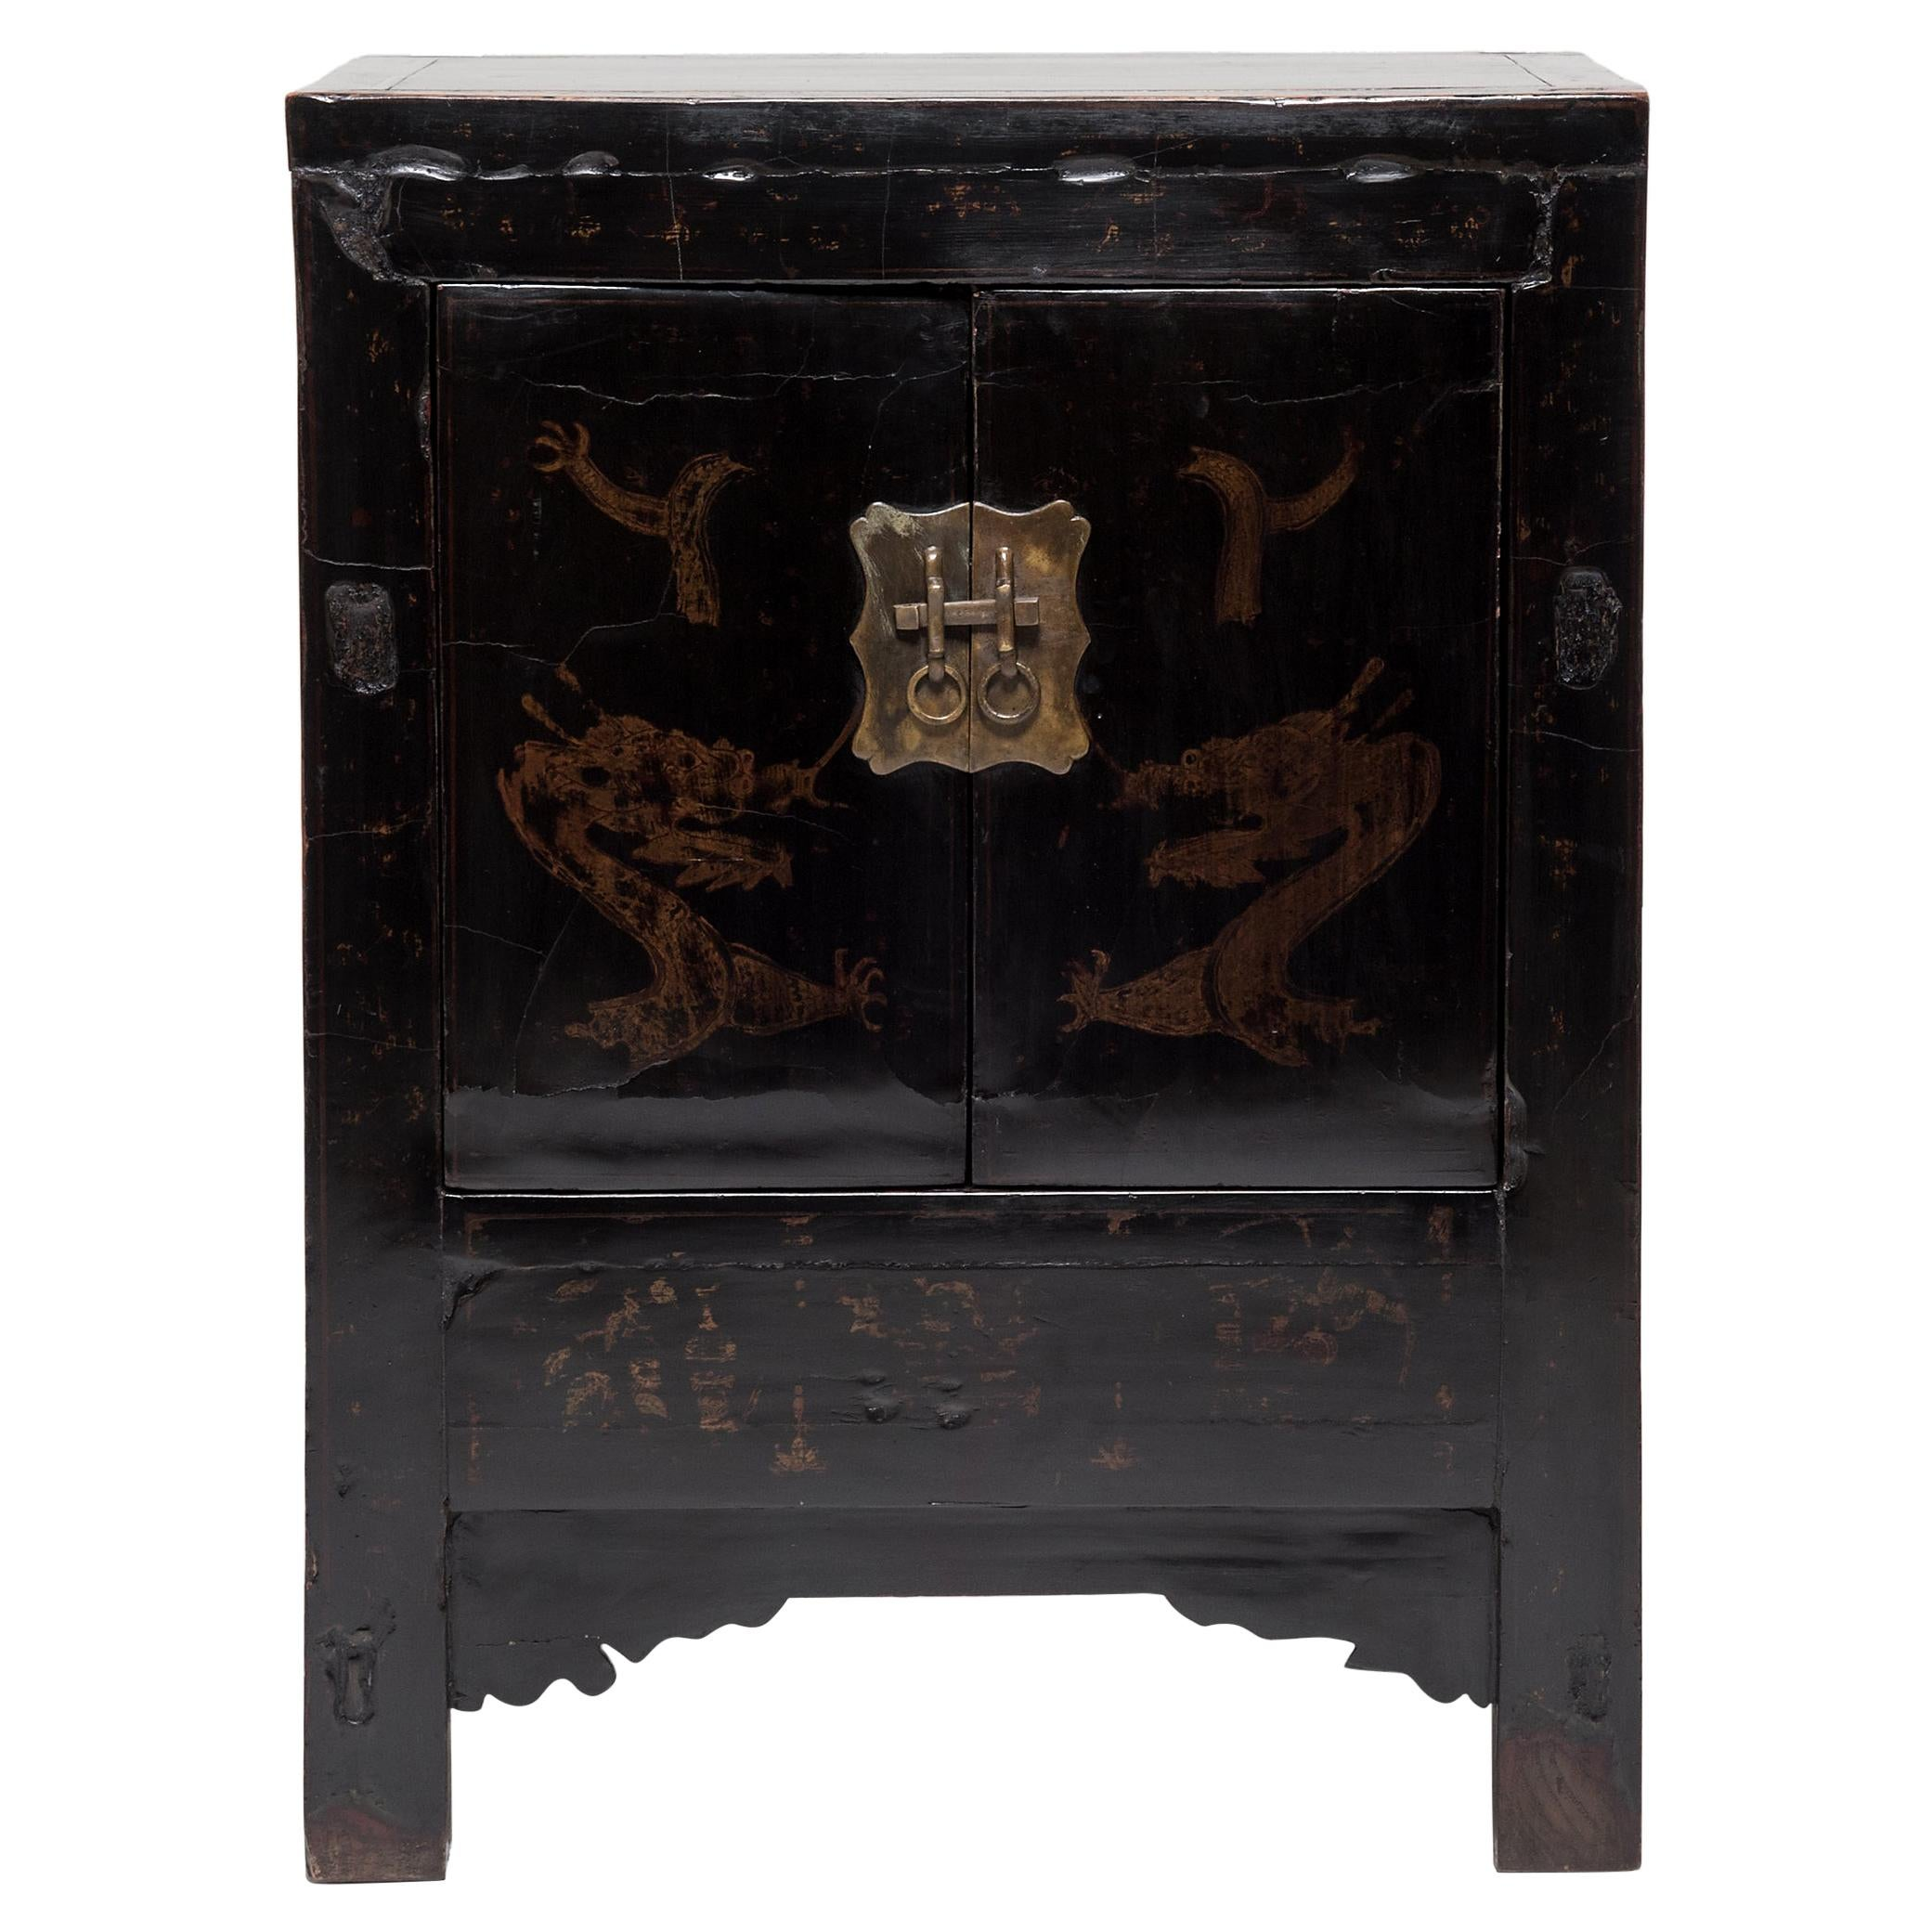 Chinese Black Lacquer Dragon Cabinet, c. 1850